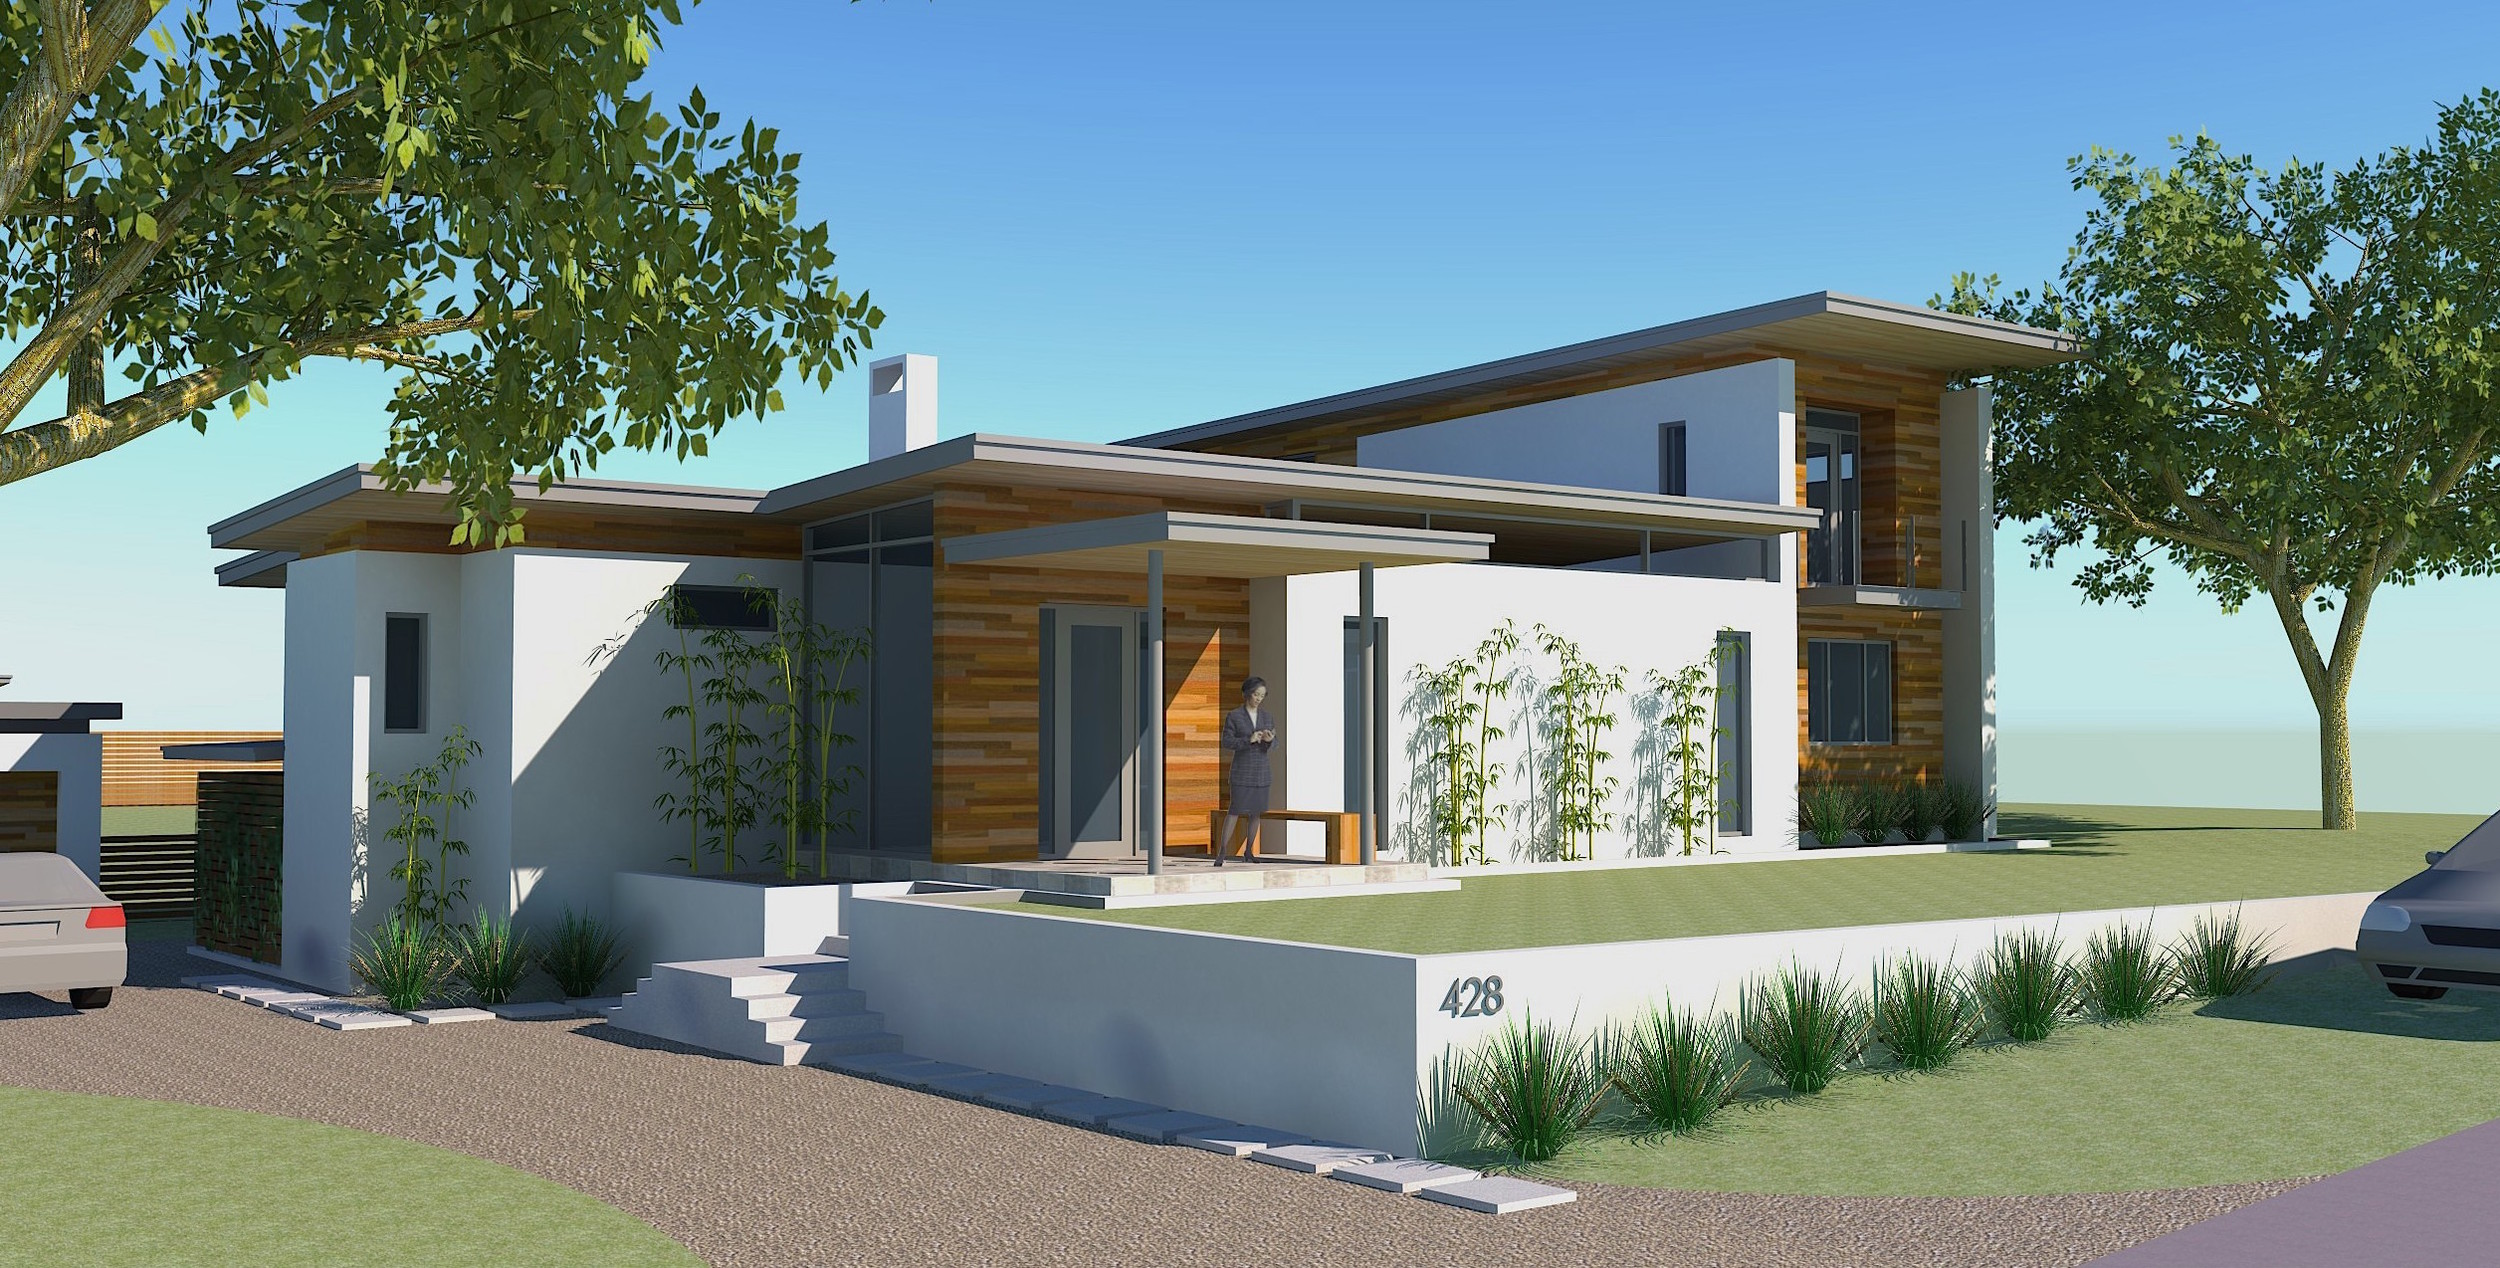 2012  | Design starts for a modern house in Old Mount Pleasant with edited, clean lines and a horizontal emphasis.